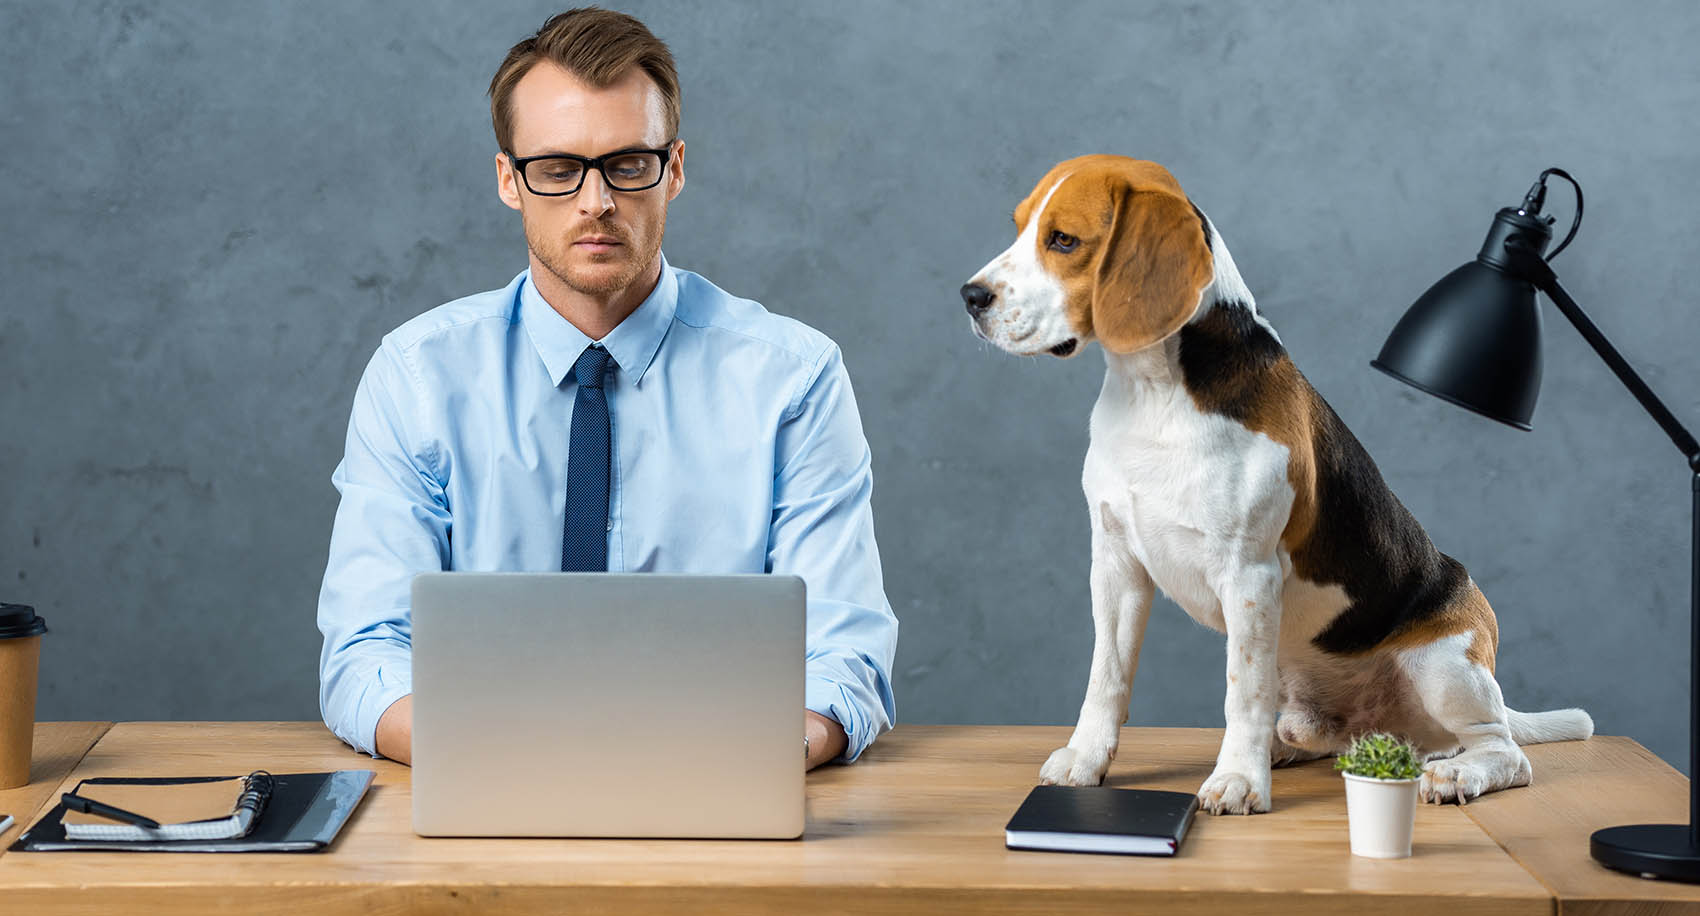 Should Dogs Be Allowed In The Office? Dogs In The Office